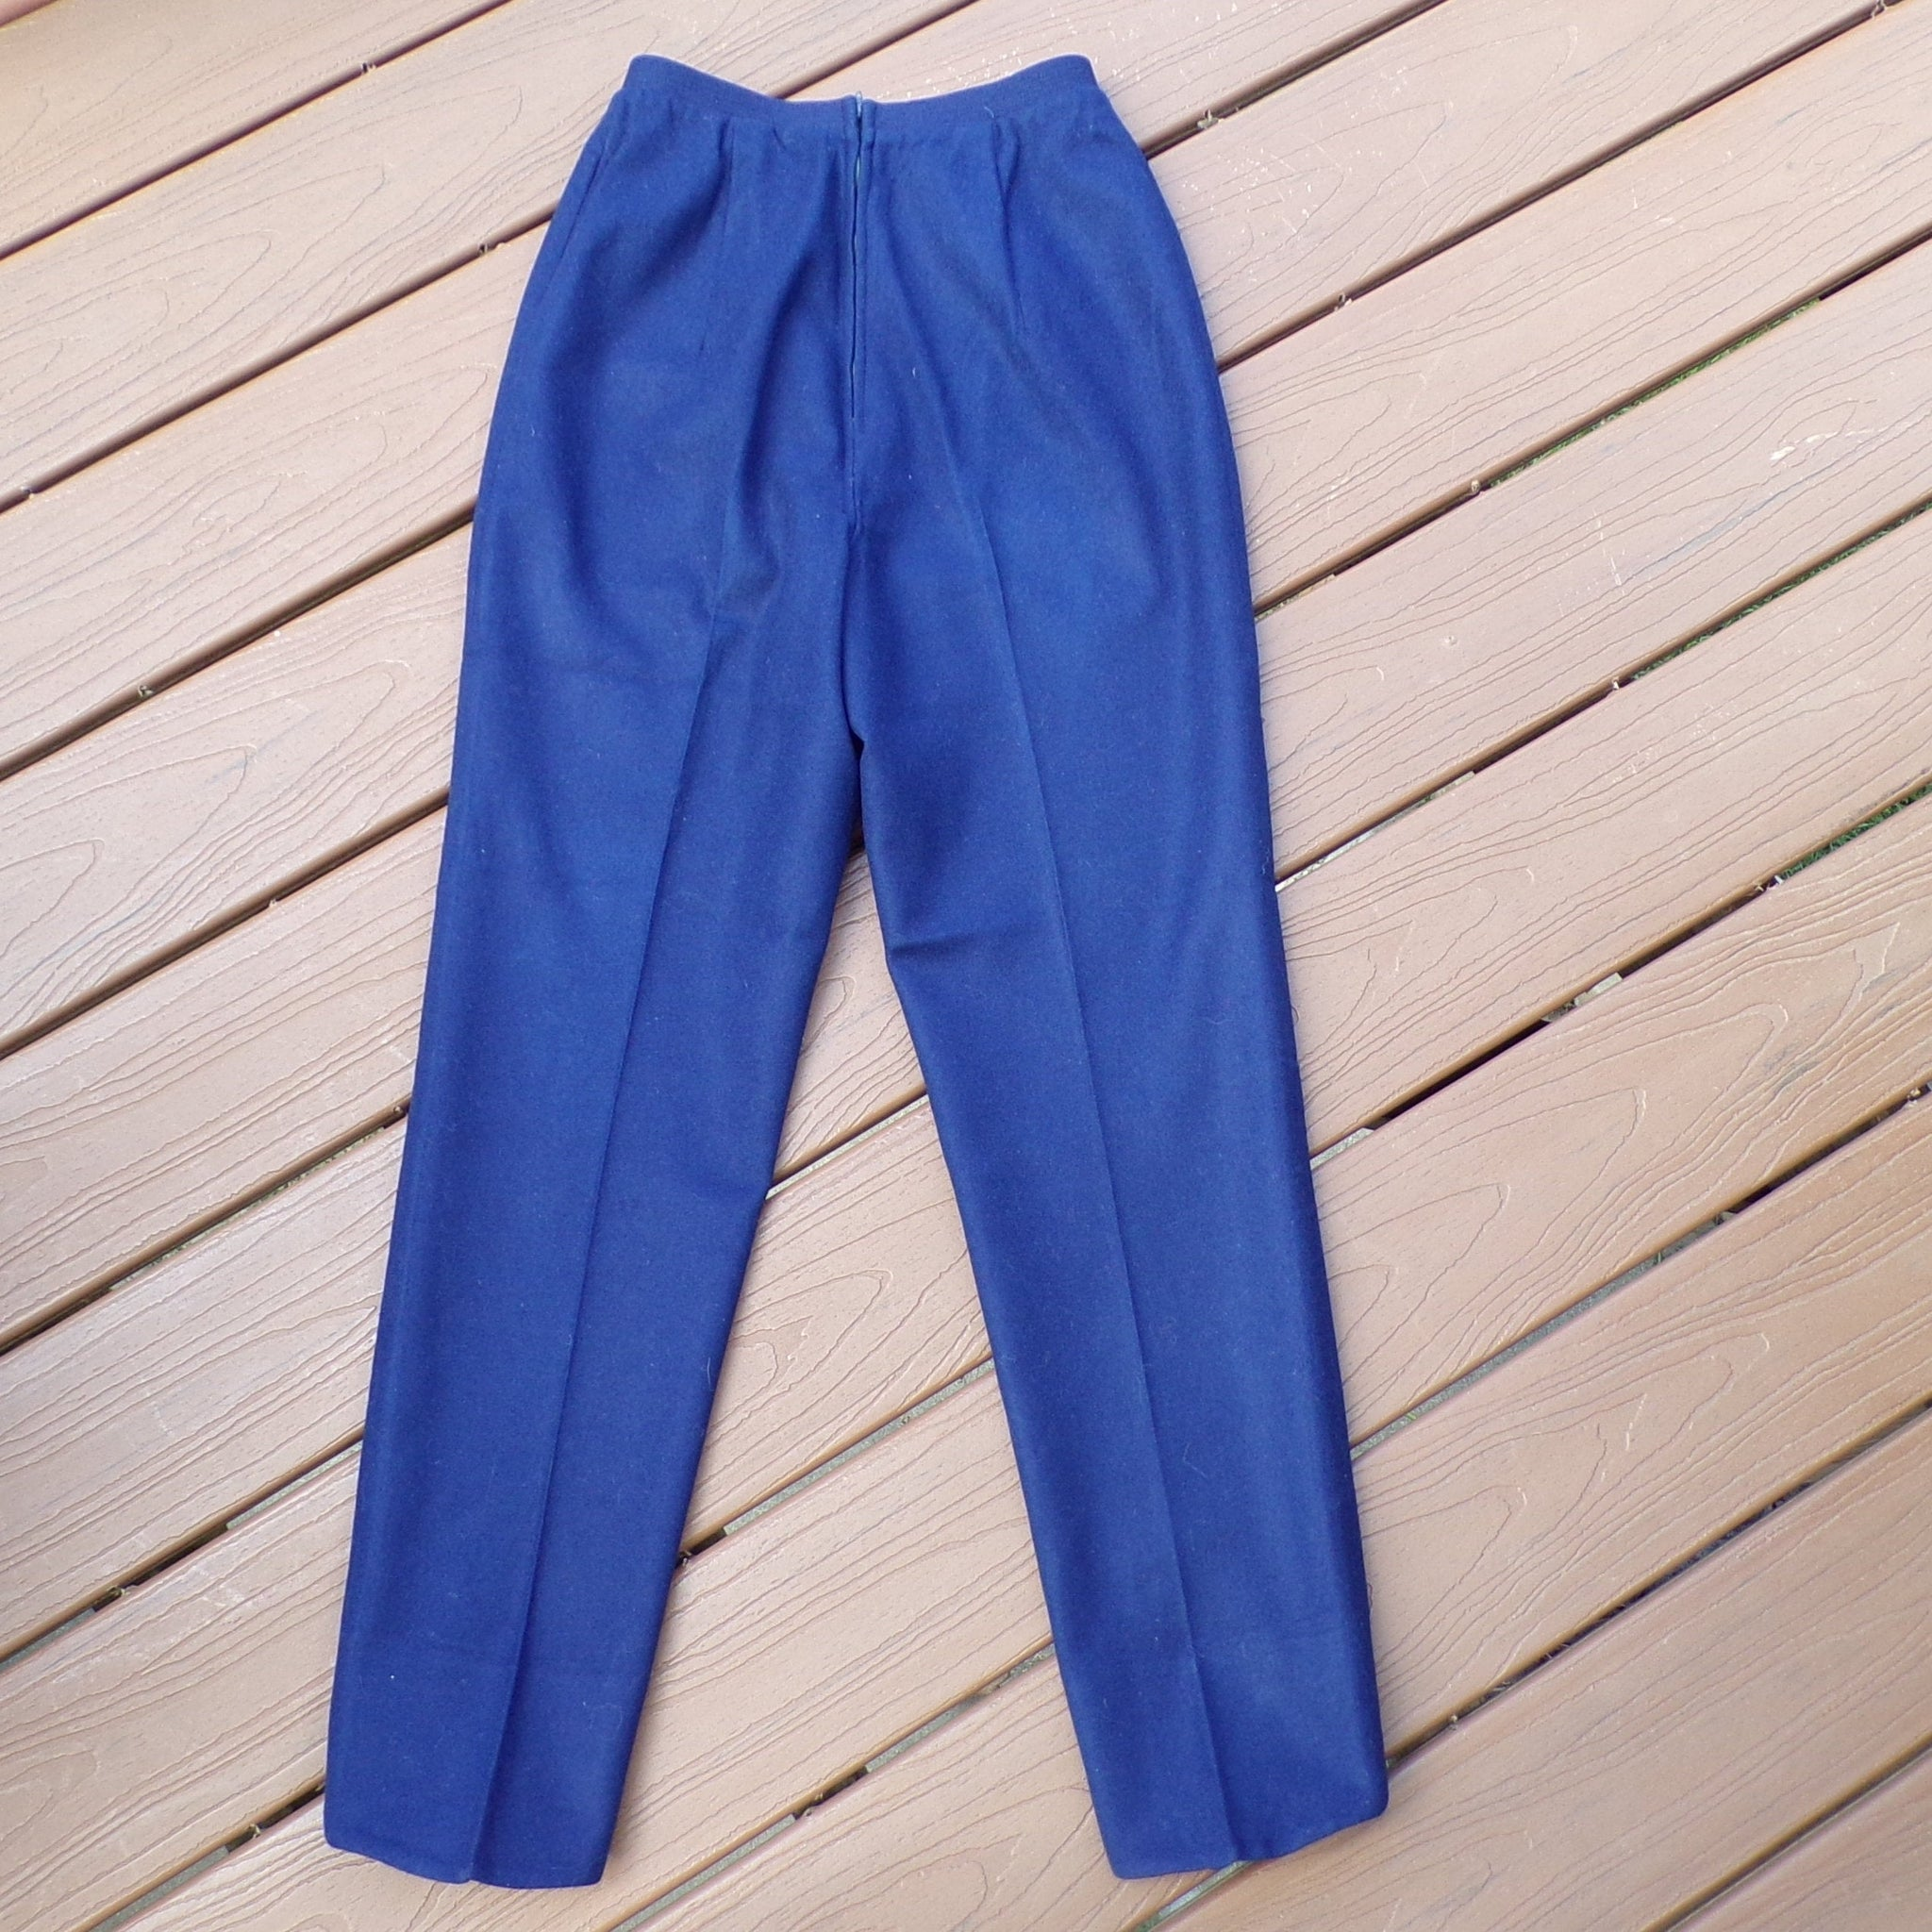 dark navy KORET WOOL PANTS blue tapered high waist S (A9)